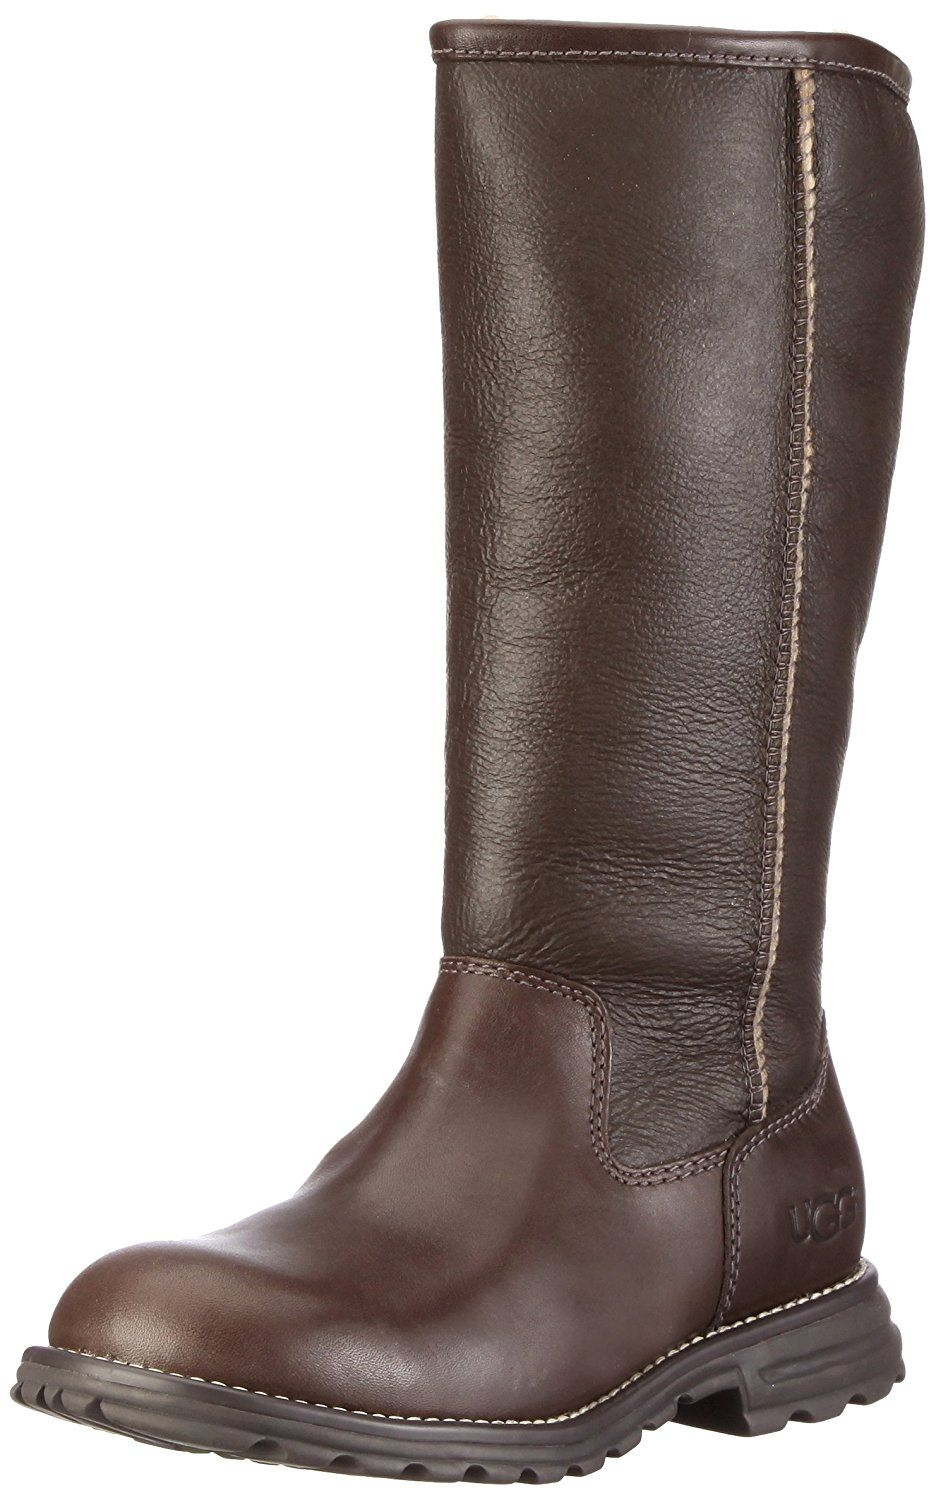 7def9d180d6 UGG Australia Women's Brooks Tall,Brown,US 10 M *** Find out more ...